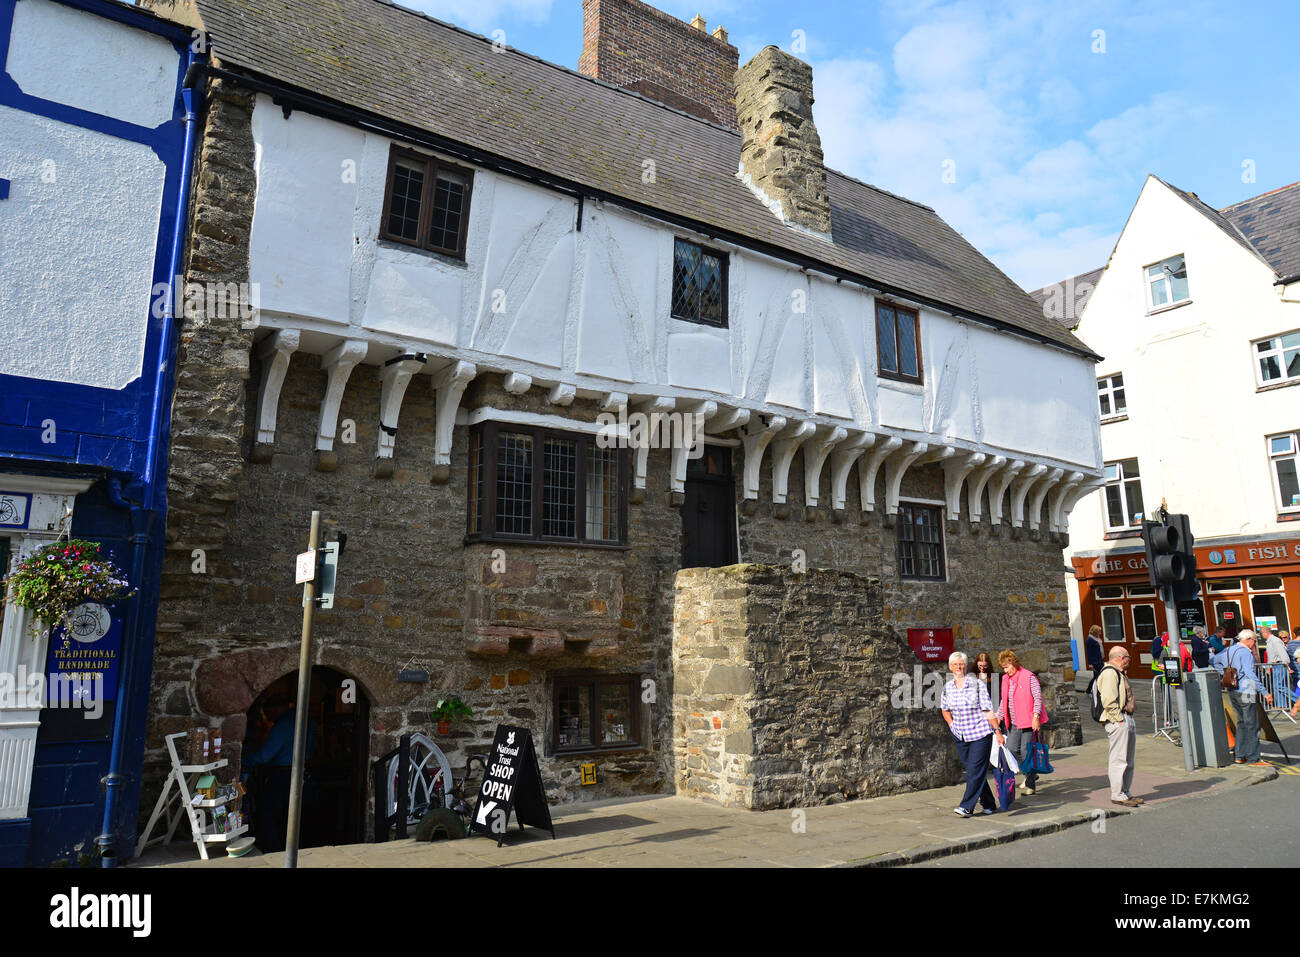 14th century merchant's Aberconwy House, Castle Street, Conwy, Conwy County Borough, Wales, United Kingdom - Stock Image